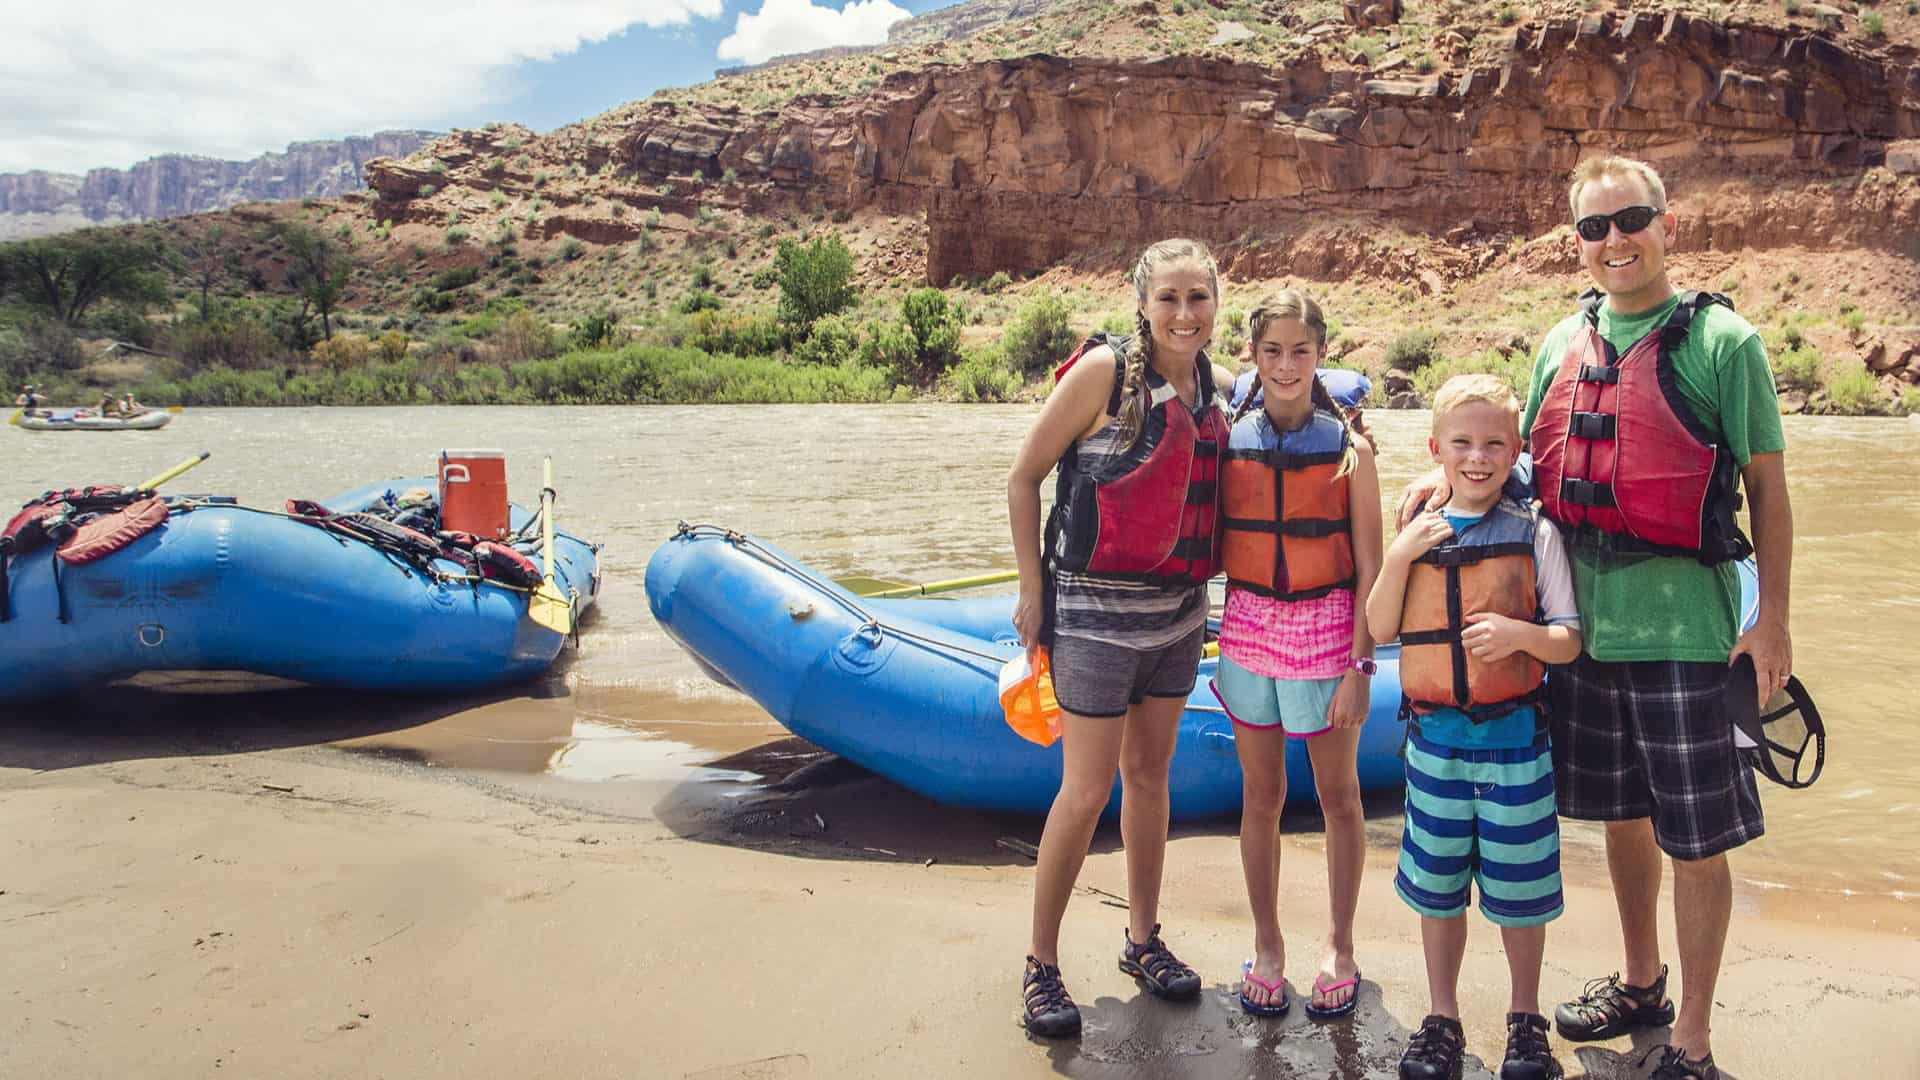 Family rafting on the Colorado River in Arizona with boats, river, and mountains in the background